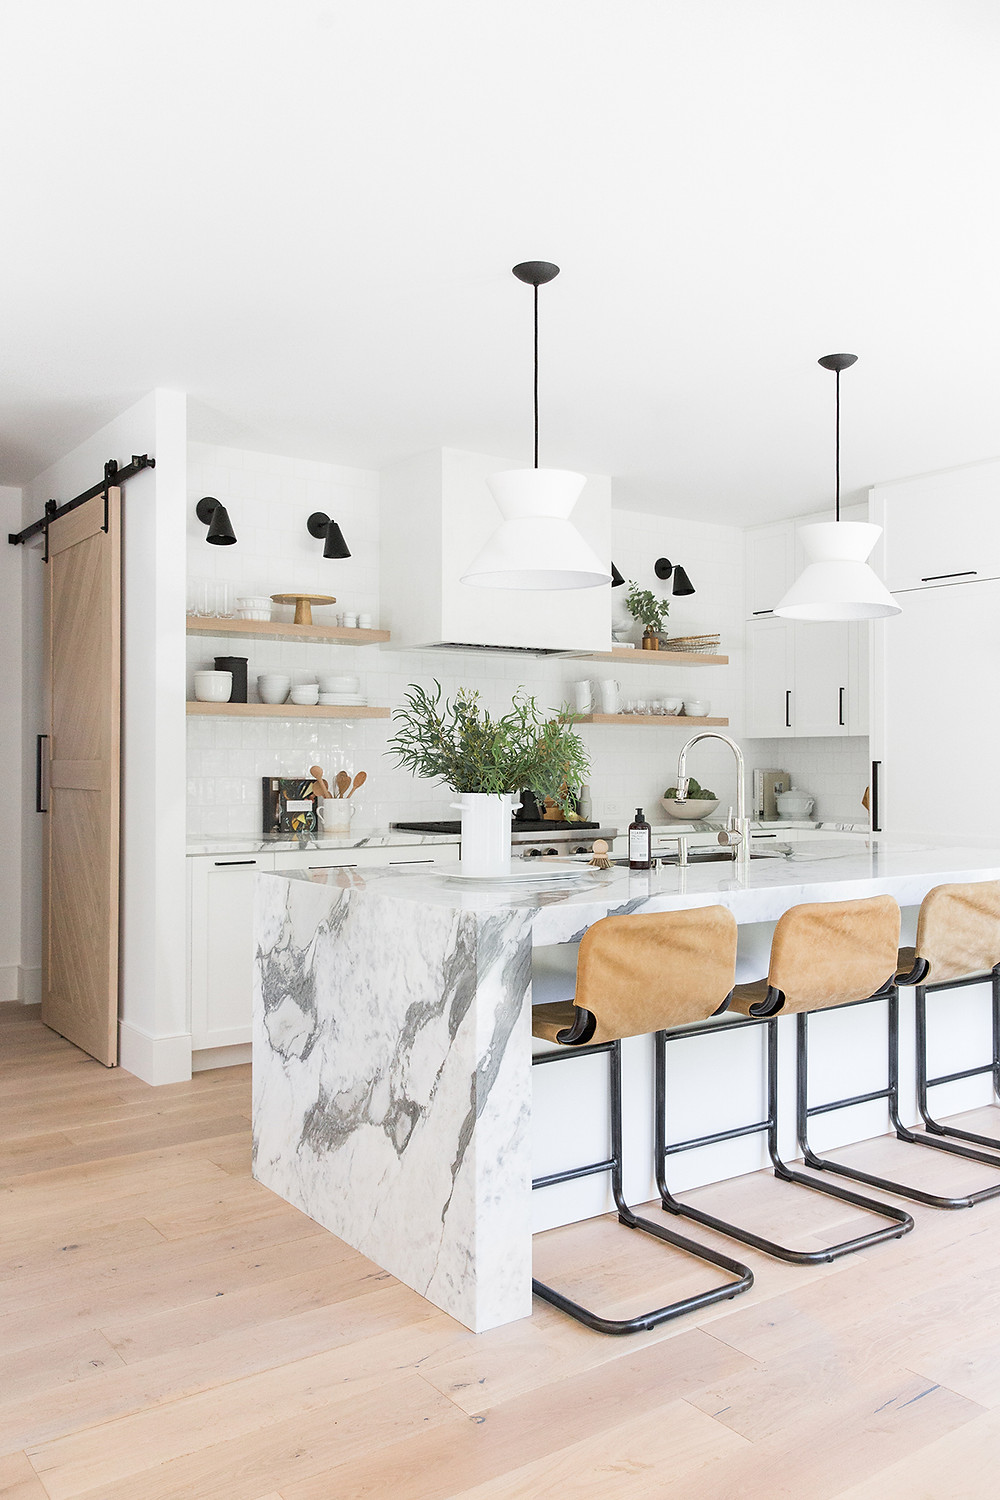 Organised kitchen with seating - Homefulness